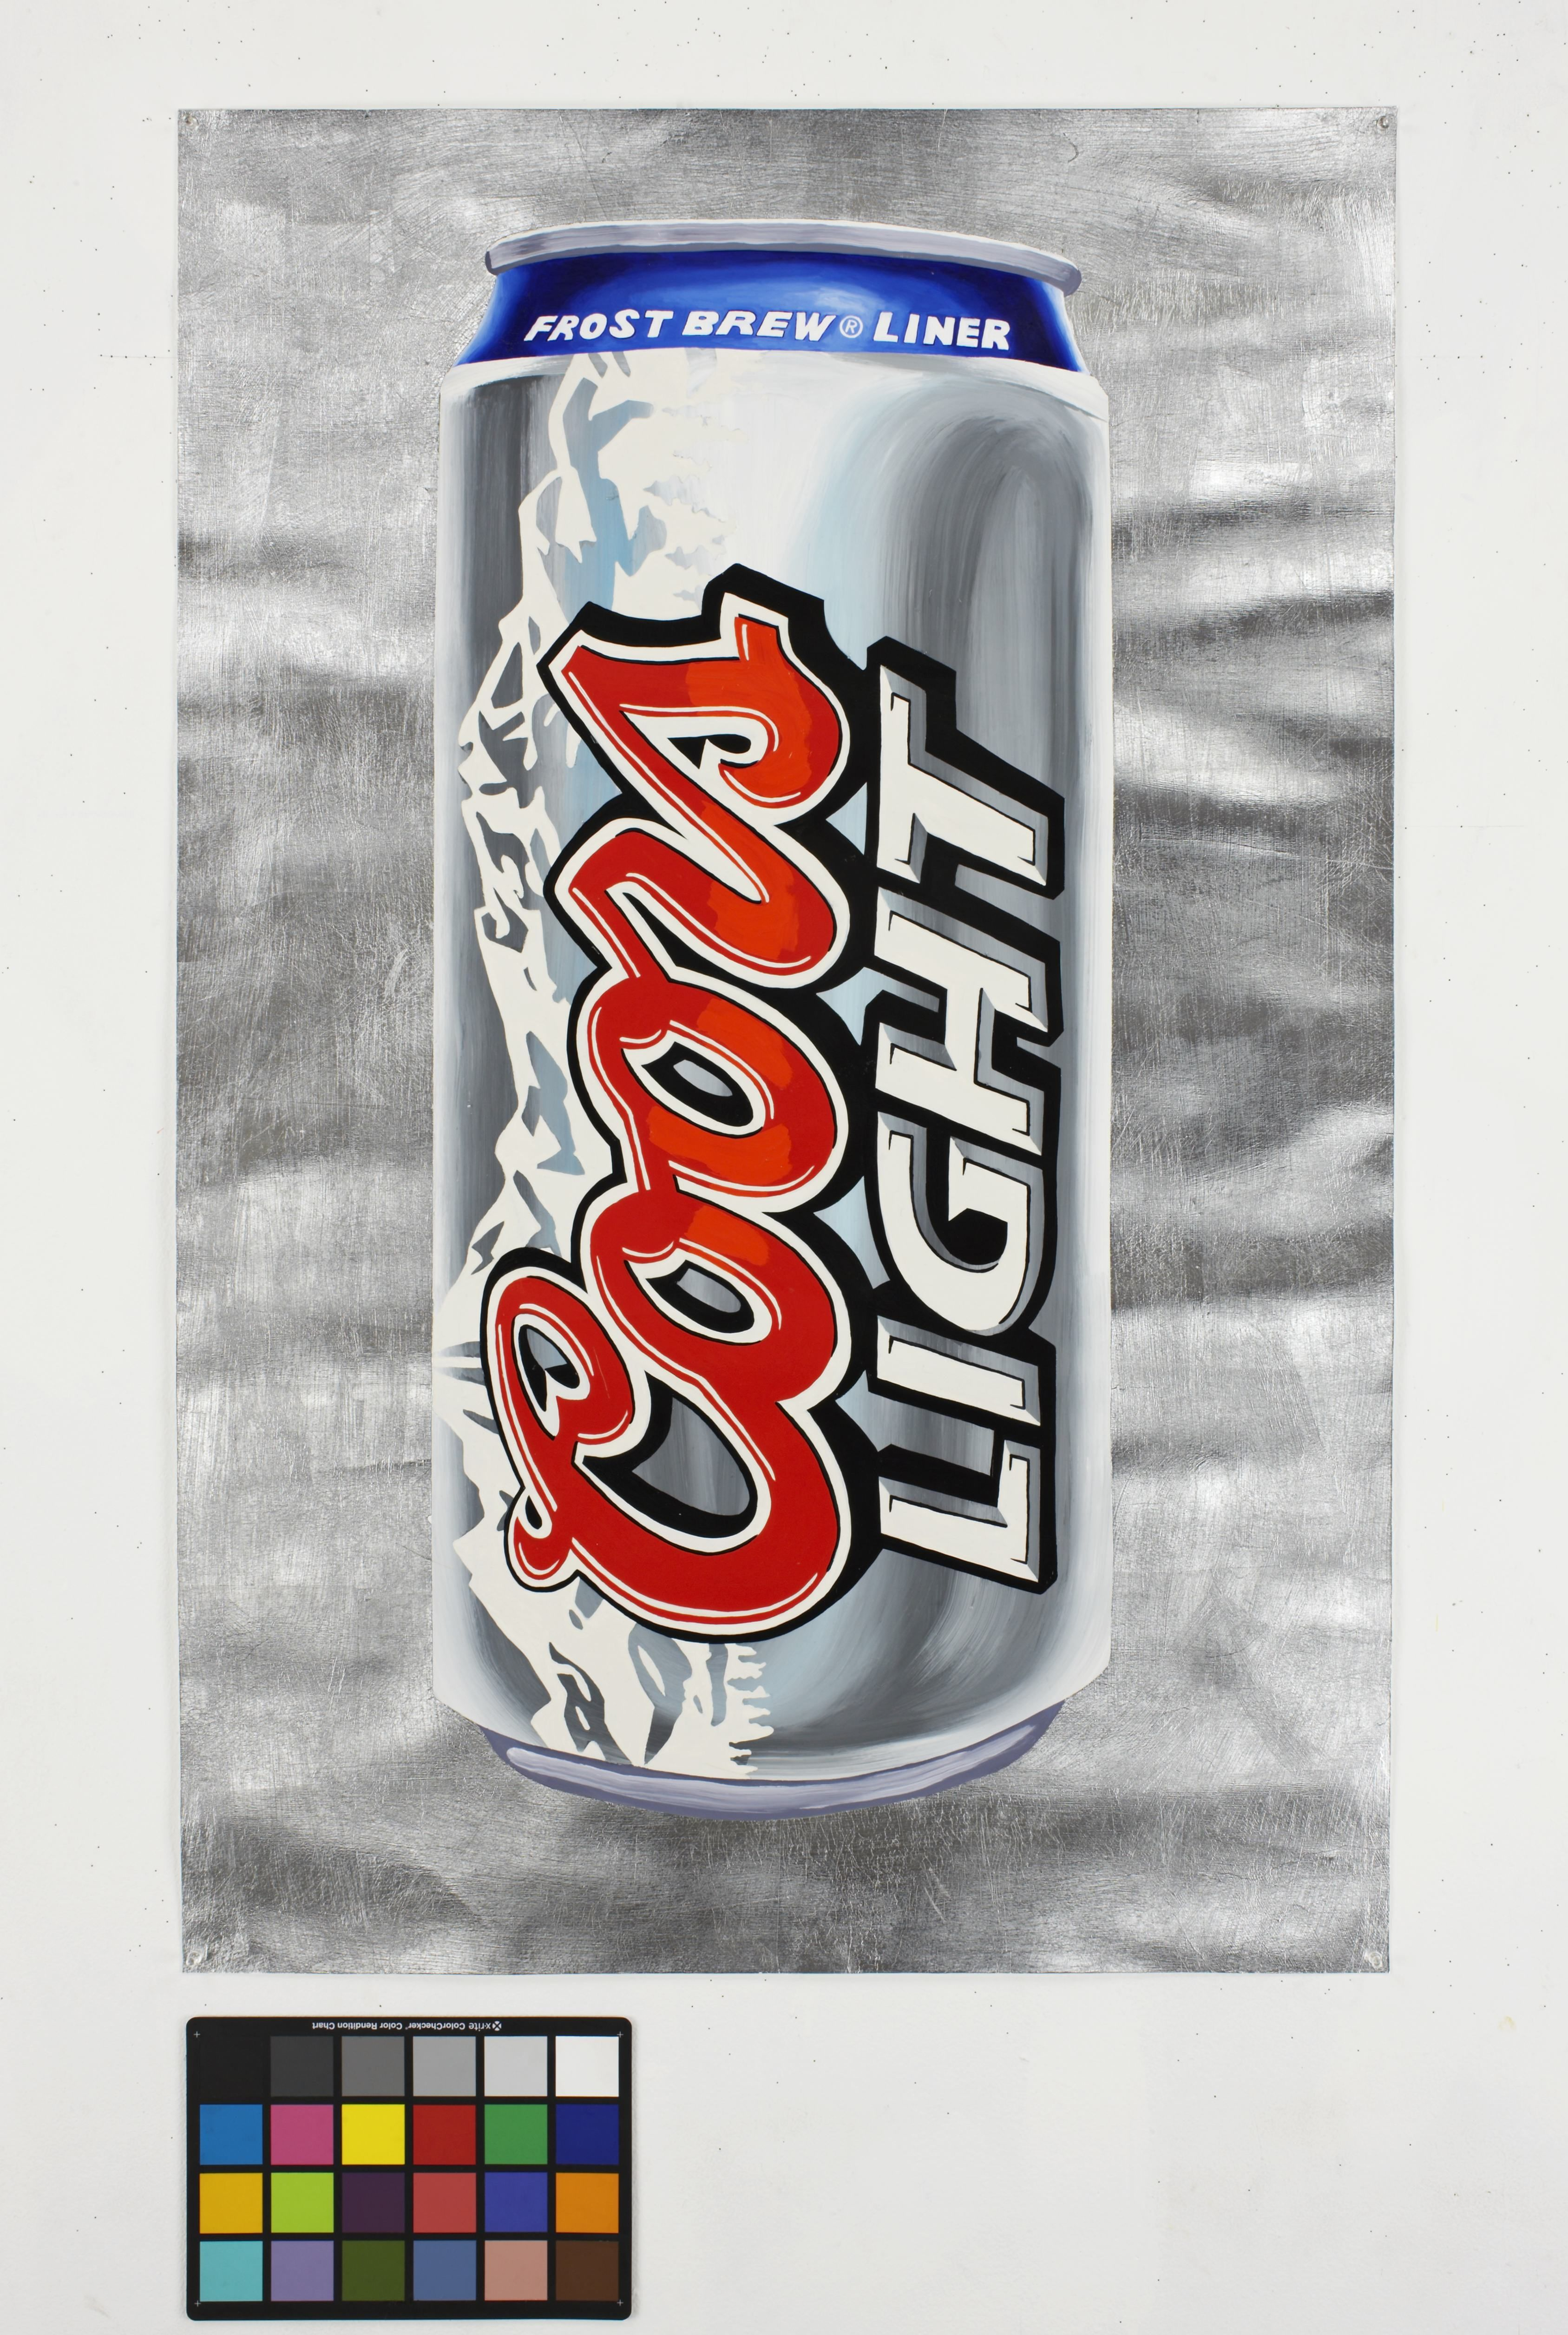 coors light cans coors light posters Coors light